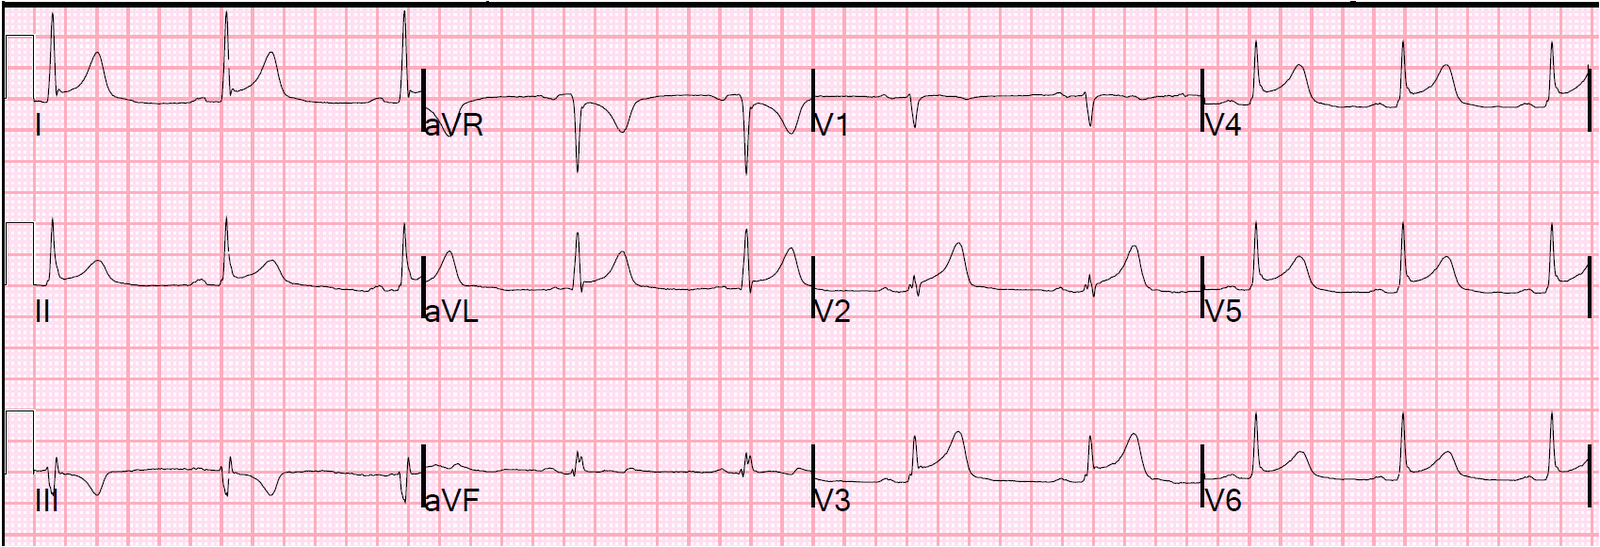 Dr. Smith's ECG Blog: Pericarditis, or Anterior STEMI? The QRS ...